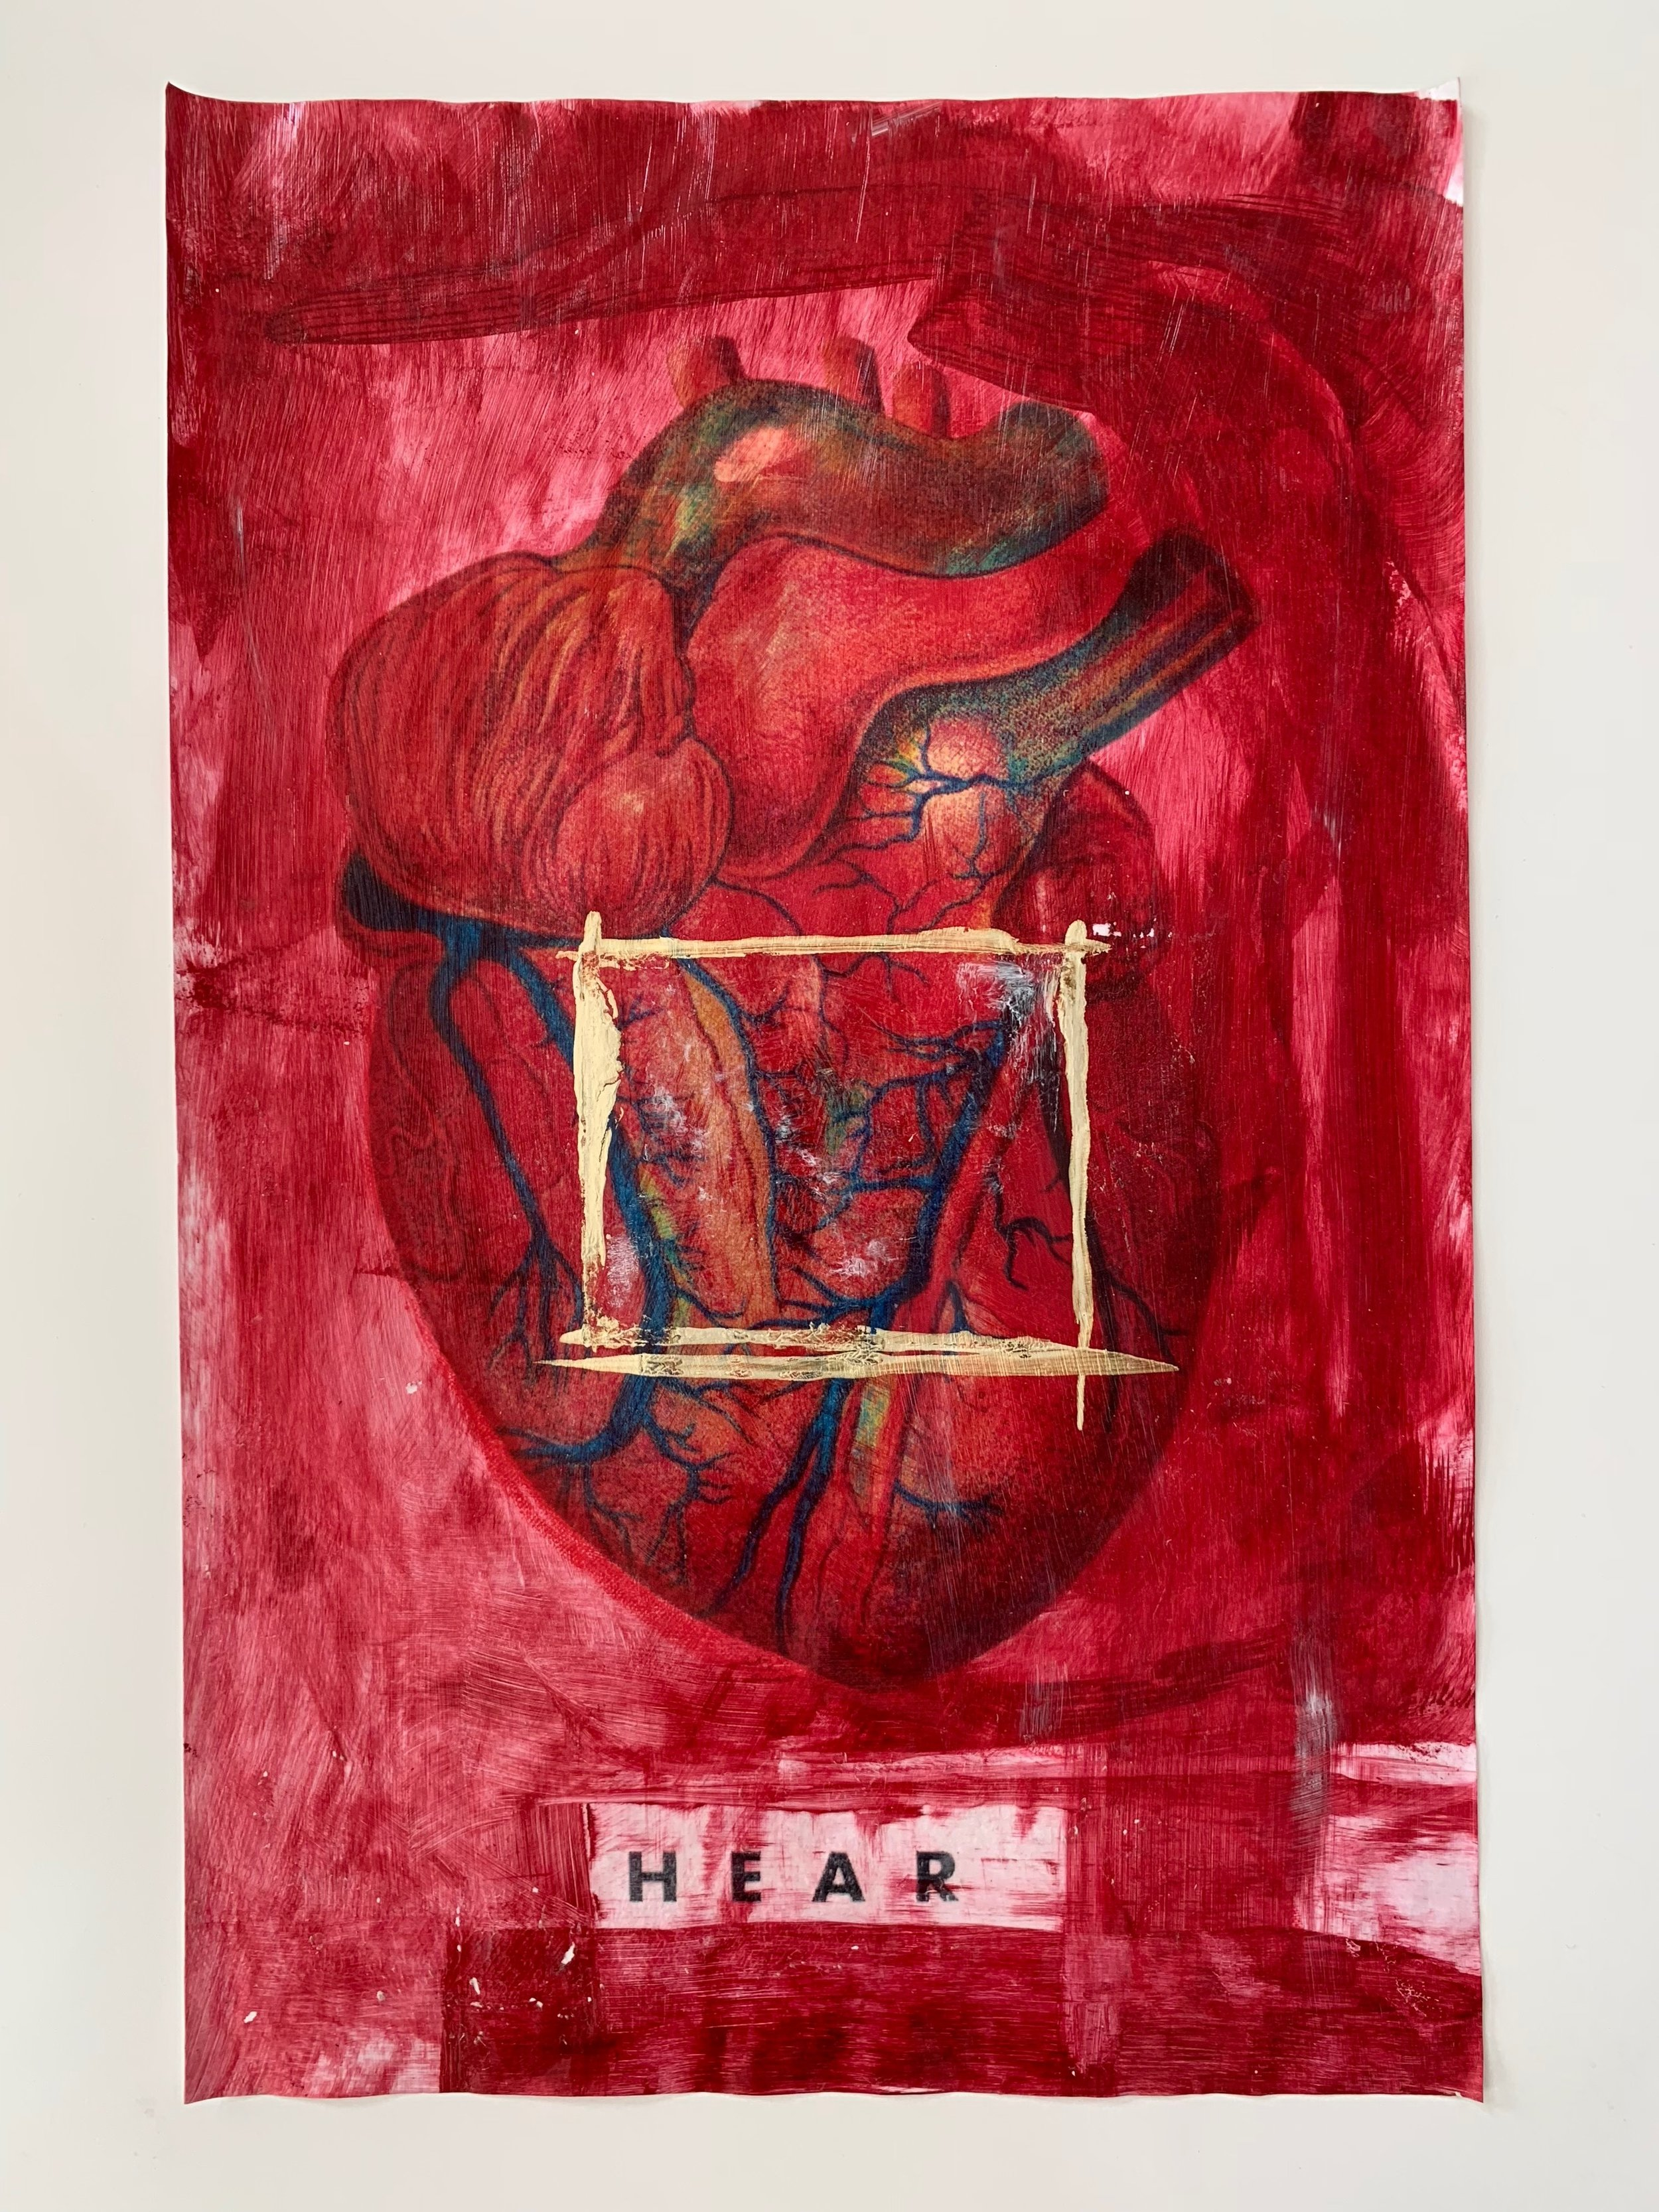 """- Hear with the Heart. #1Archival pigment print on 100% archival paperPrints signed dated numbered by Catherine JustHear with the Heart. Trust It. Trust yourself.8.5 x 11"""" $200 holiday price $100 purchase HERE.11 x 17"""" $300 holiday price $200 purchase HERE.Larger sizes available. Please inquire.Limited edition of 15.Love Bomb pricing available through Friday, November 25th.Details: This is an archival pigment print of an original mixed media painting. If you are interested in the original please email me for details.shipping is $12.00"""